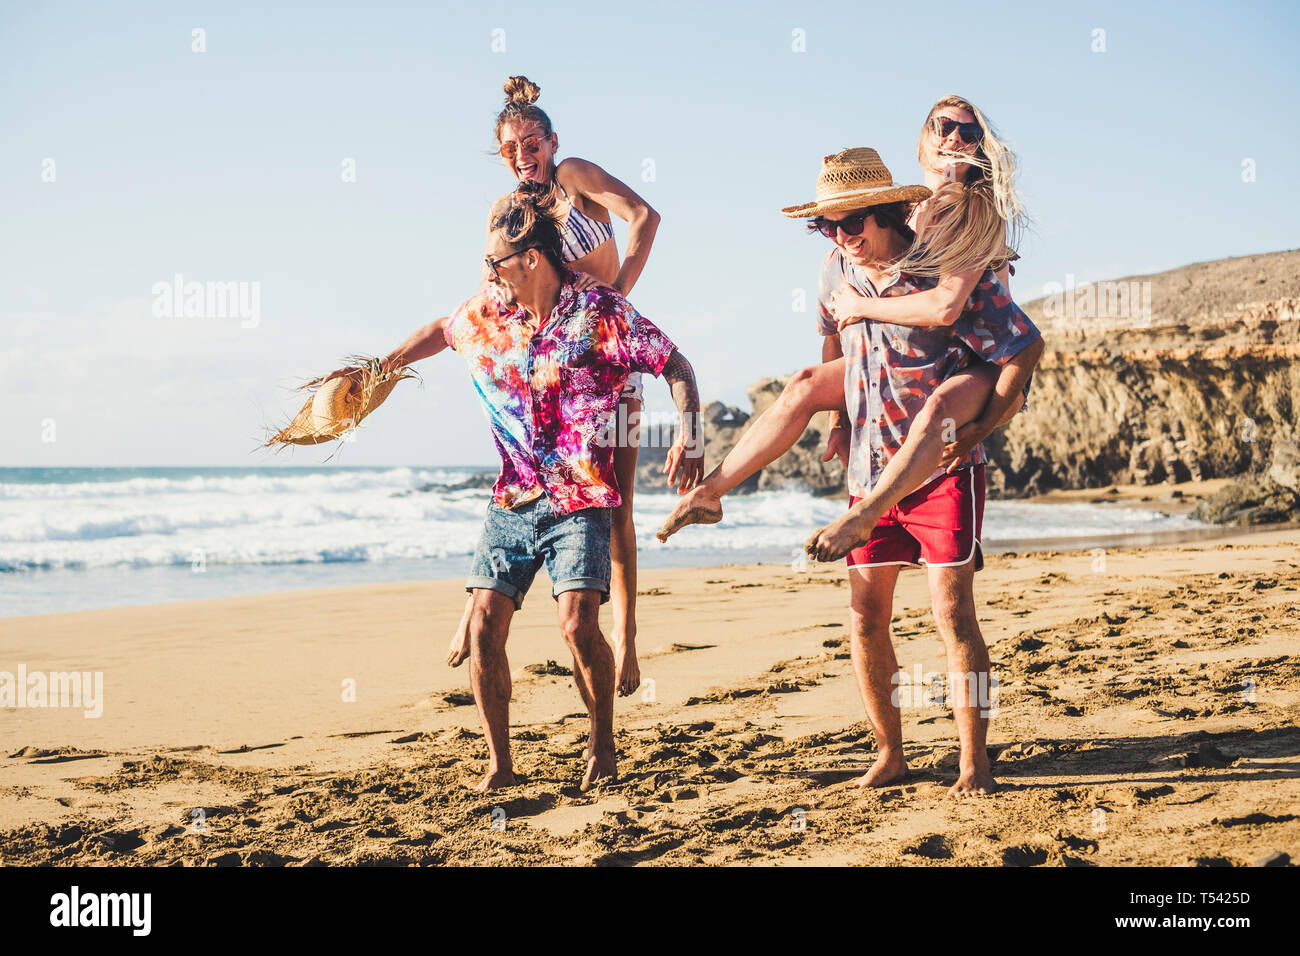 Happy group of people on vaation - youthful and funny concept with young men and women having fun together in friendship playing - boys carrying girls Stock Photo